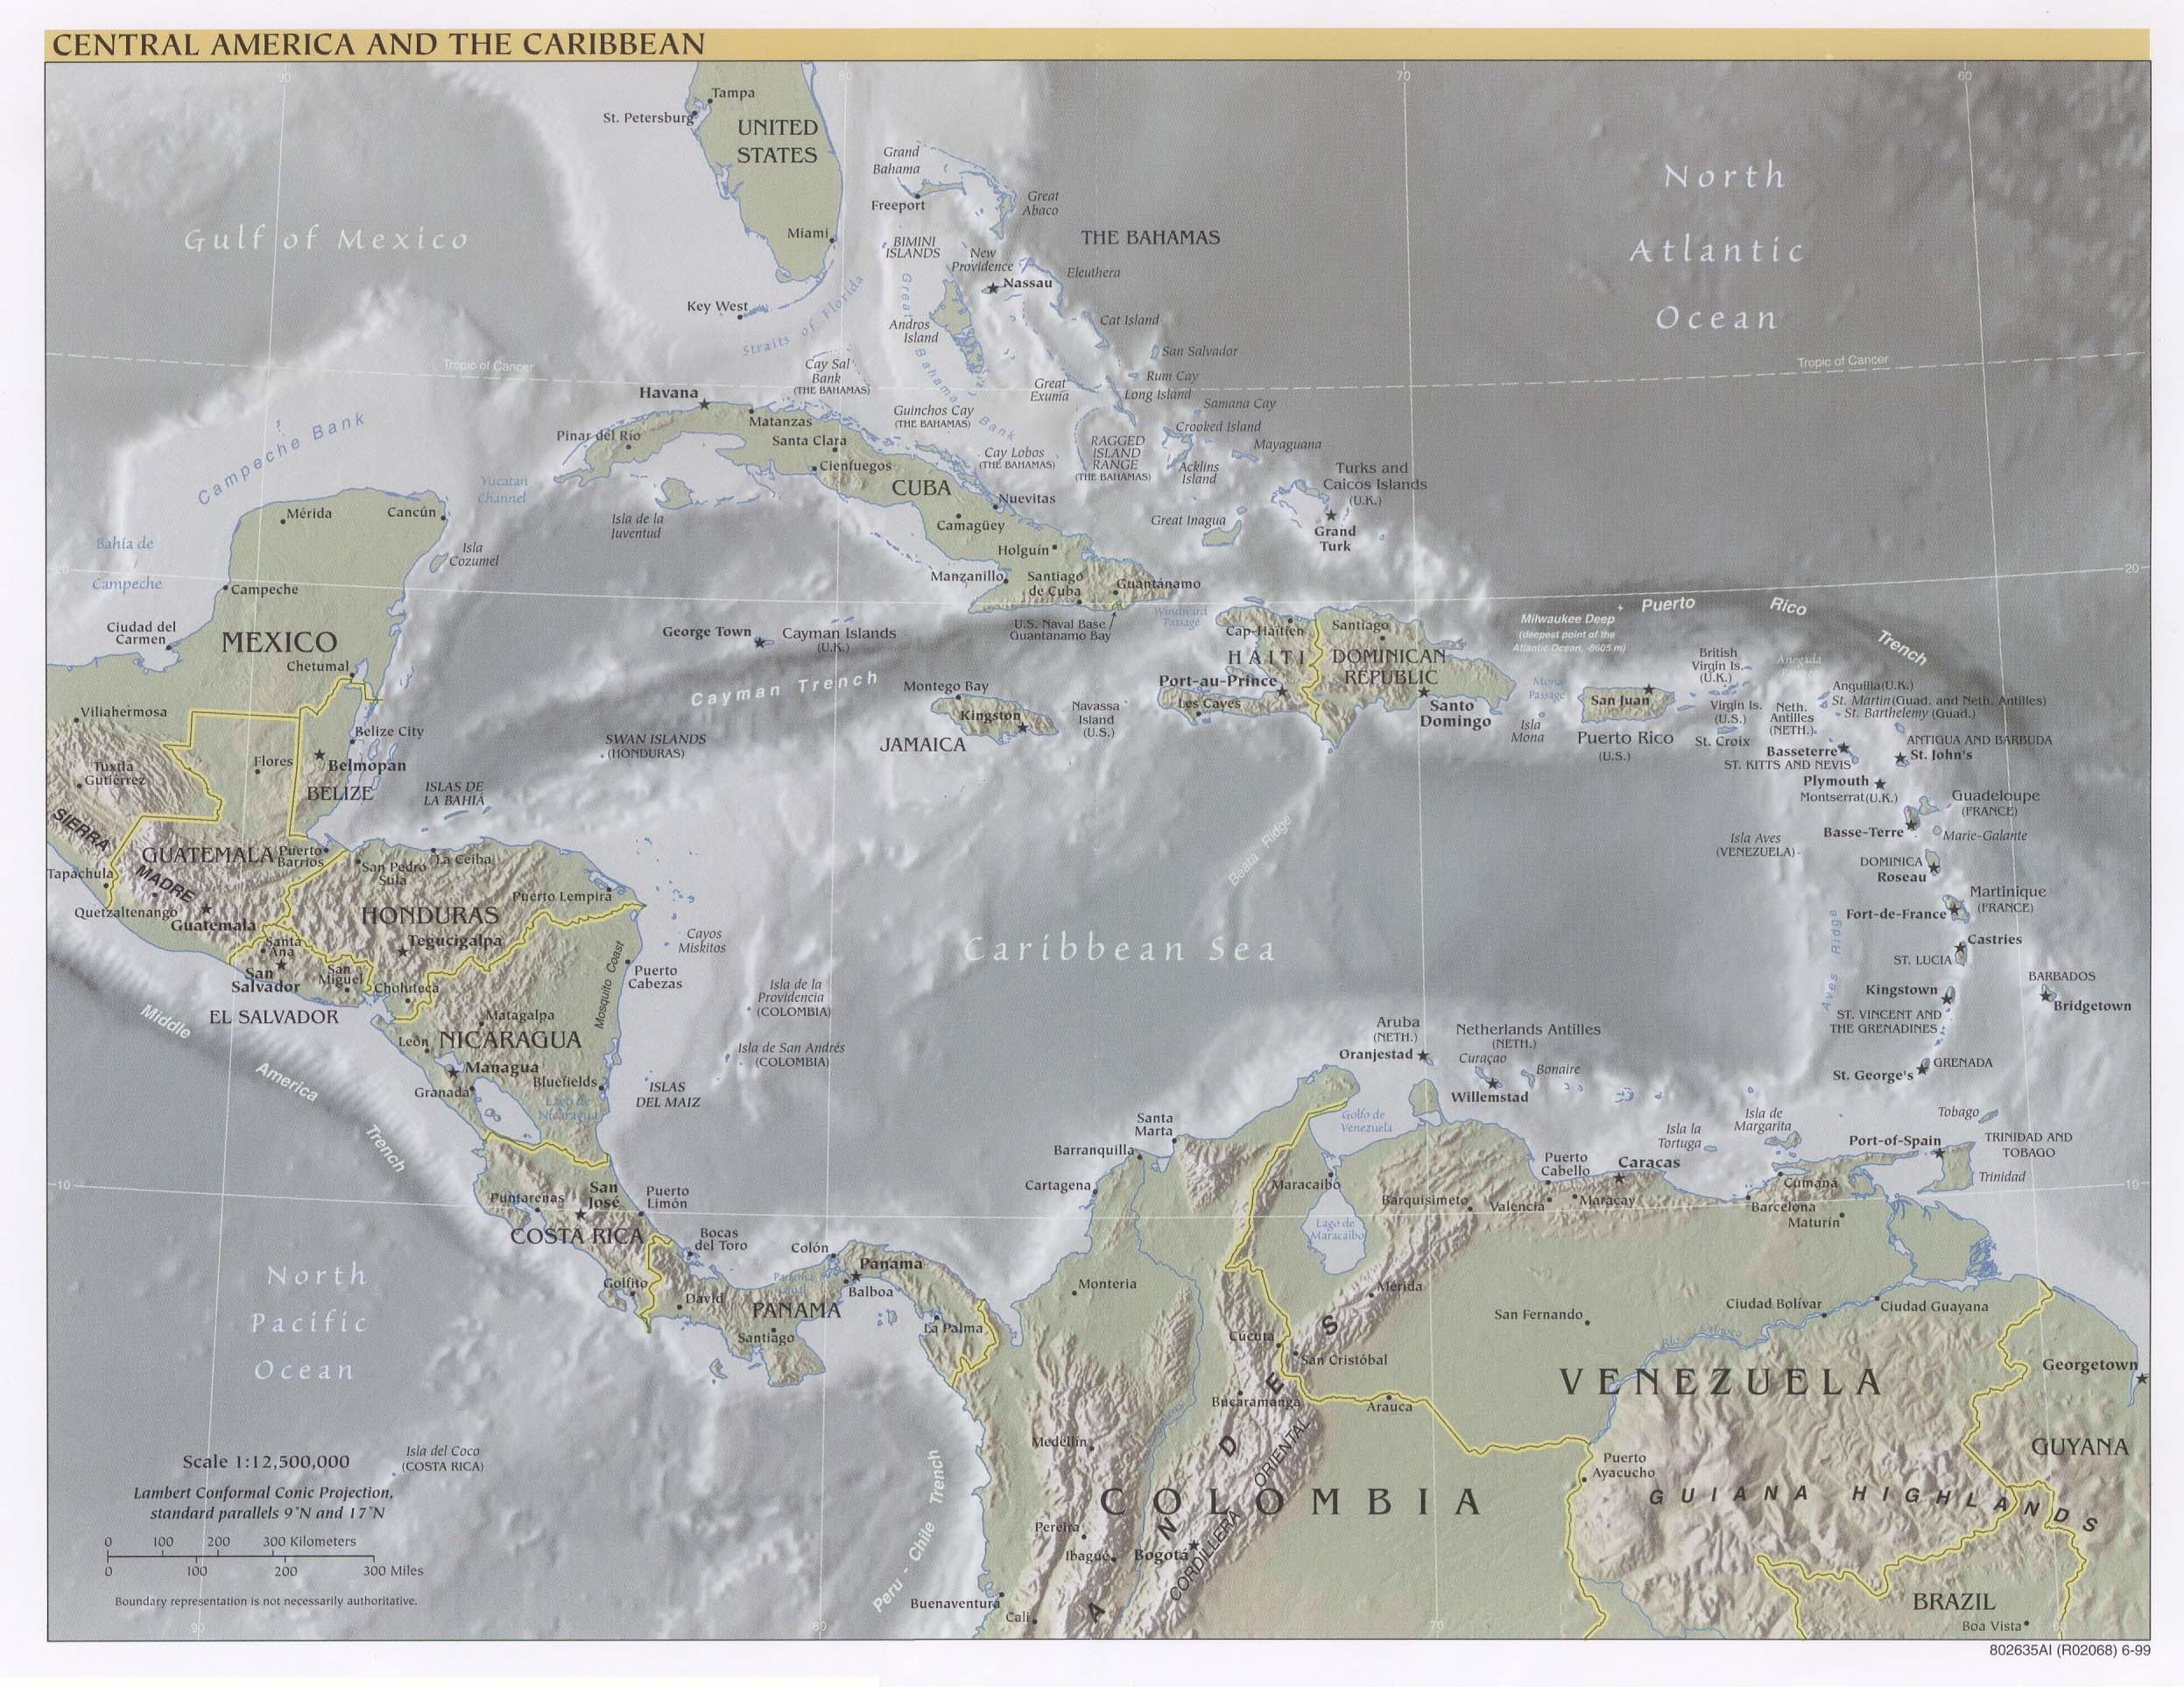 Americas Maps PerryCastañeda Map Collection UT Library Online - Central america physical map 2007